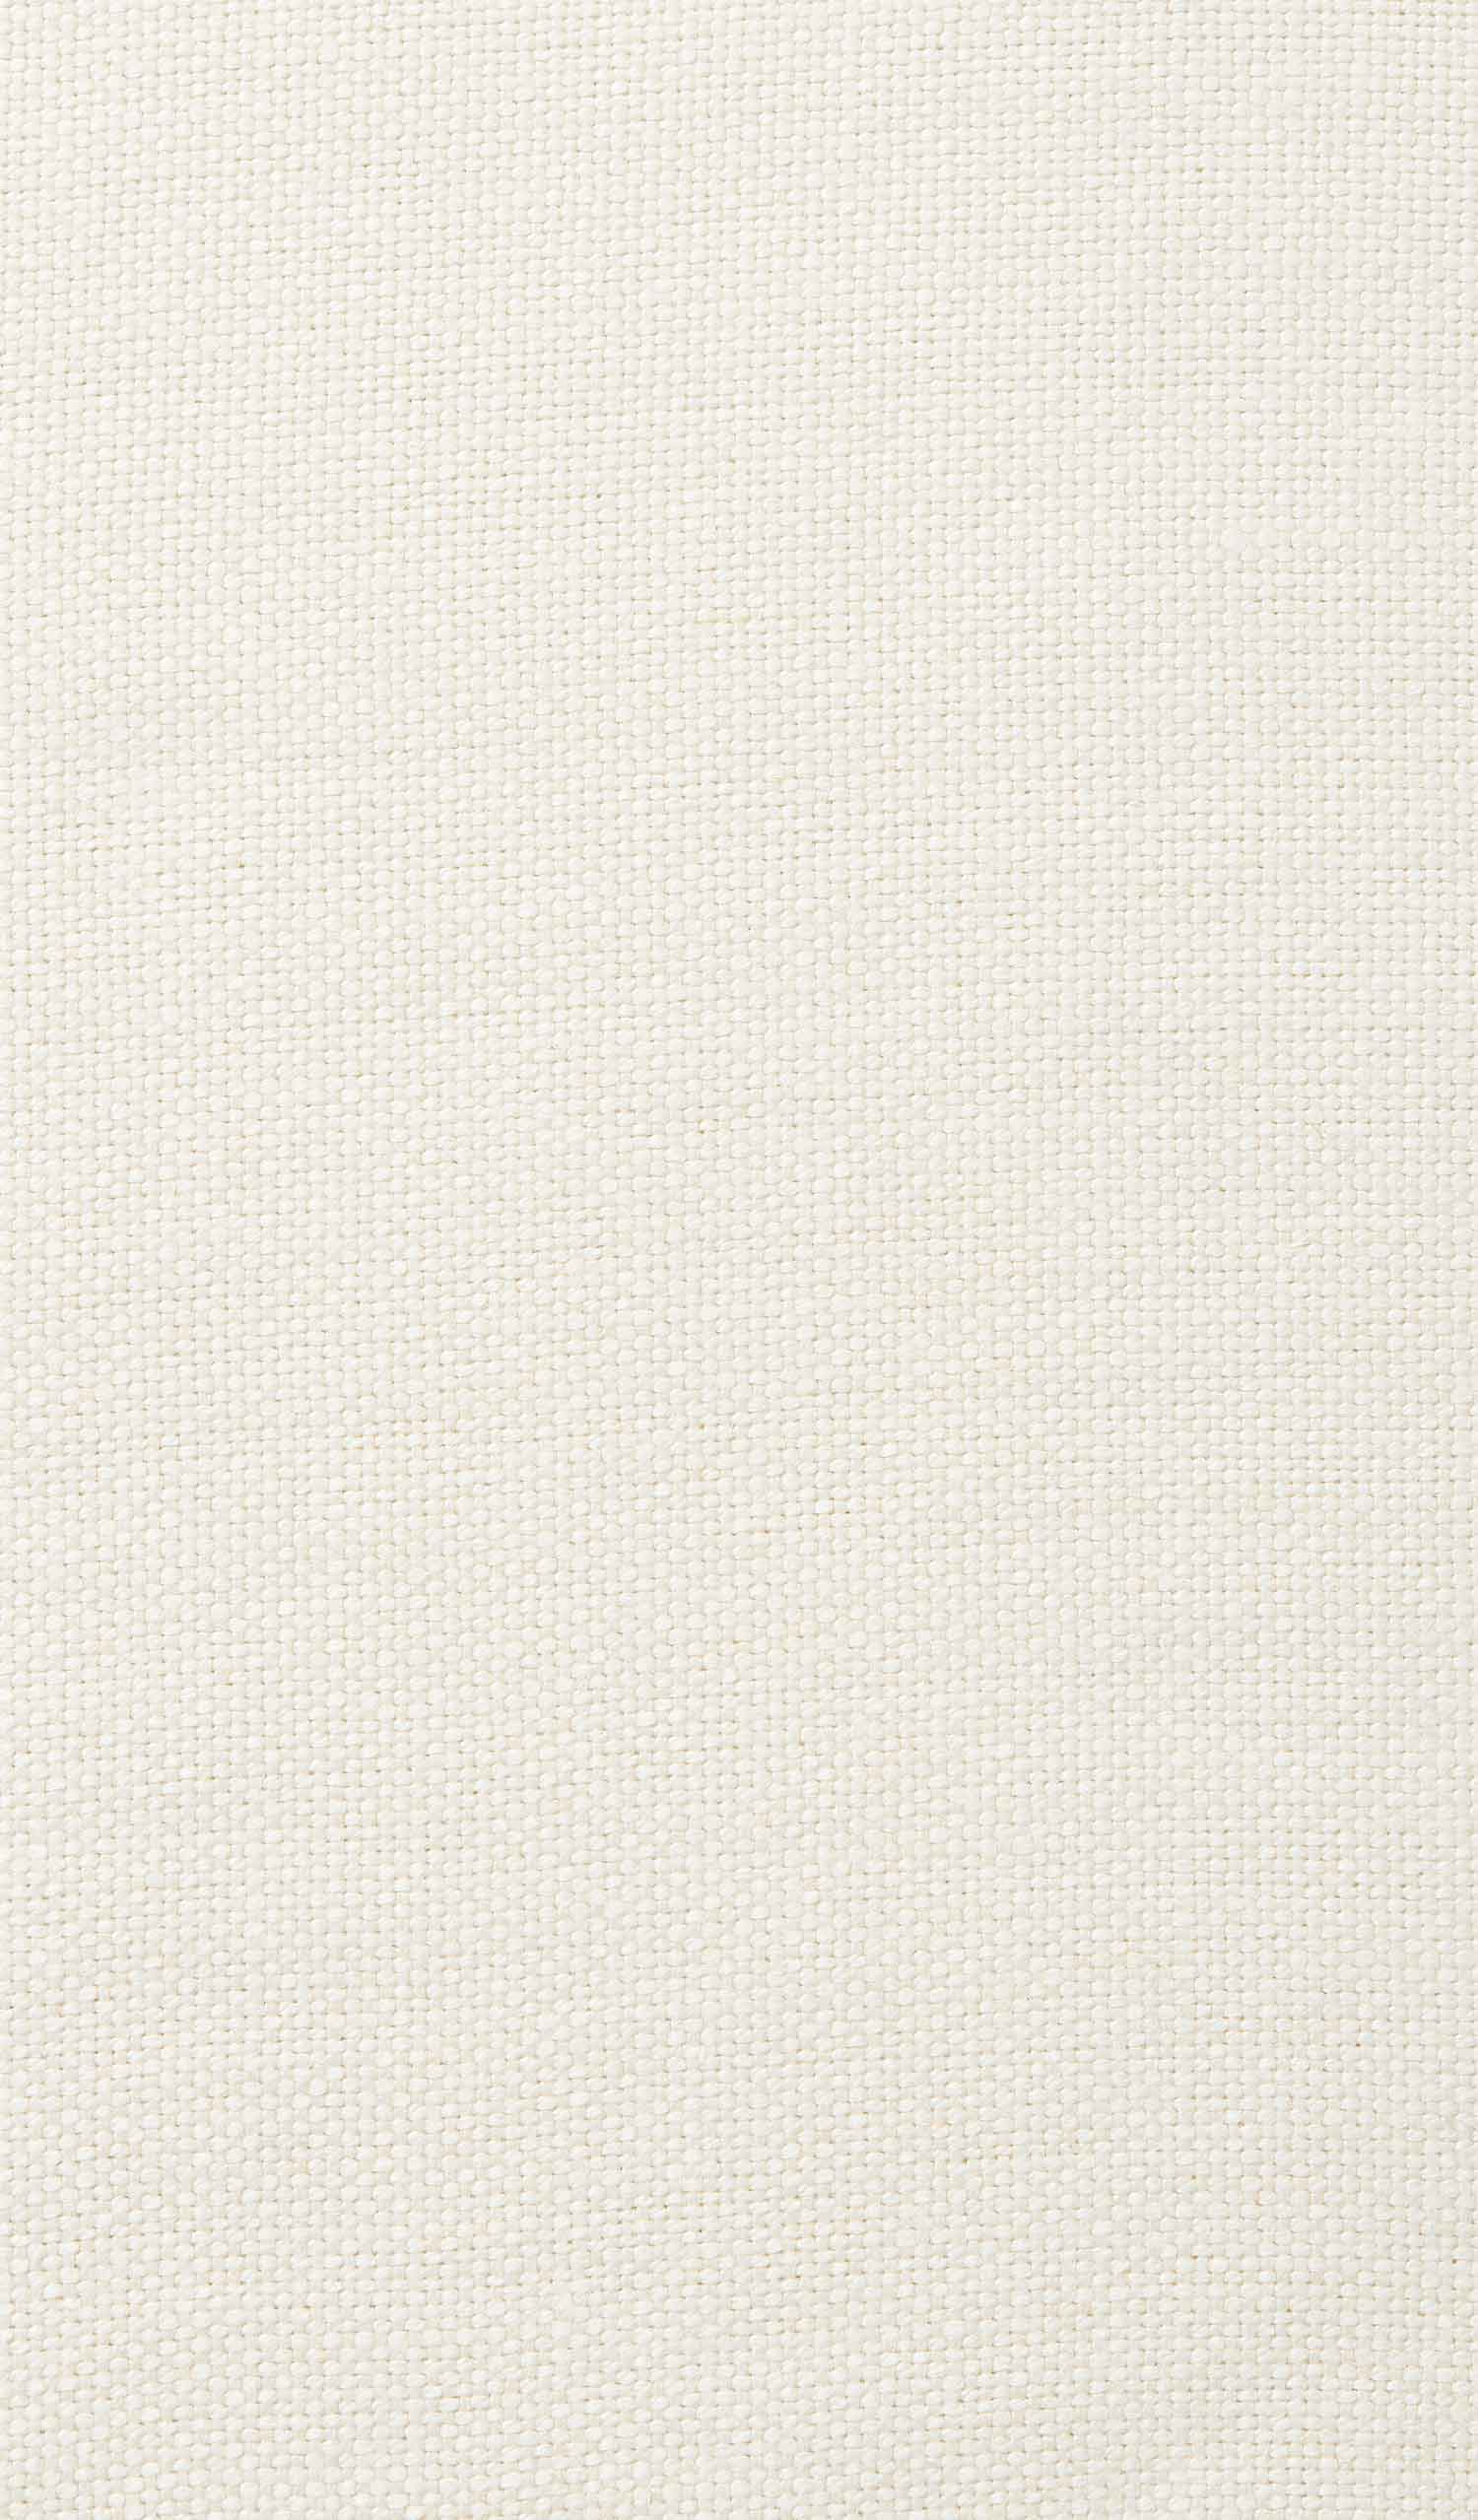 swatch of linen rustic oyster